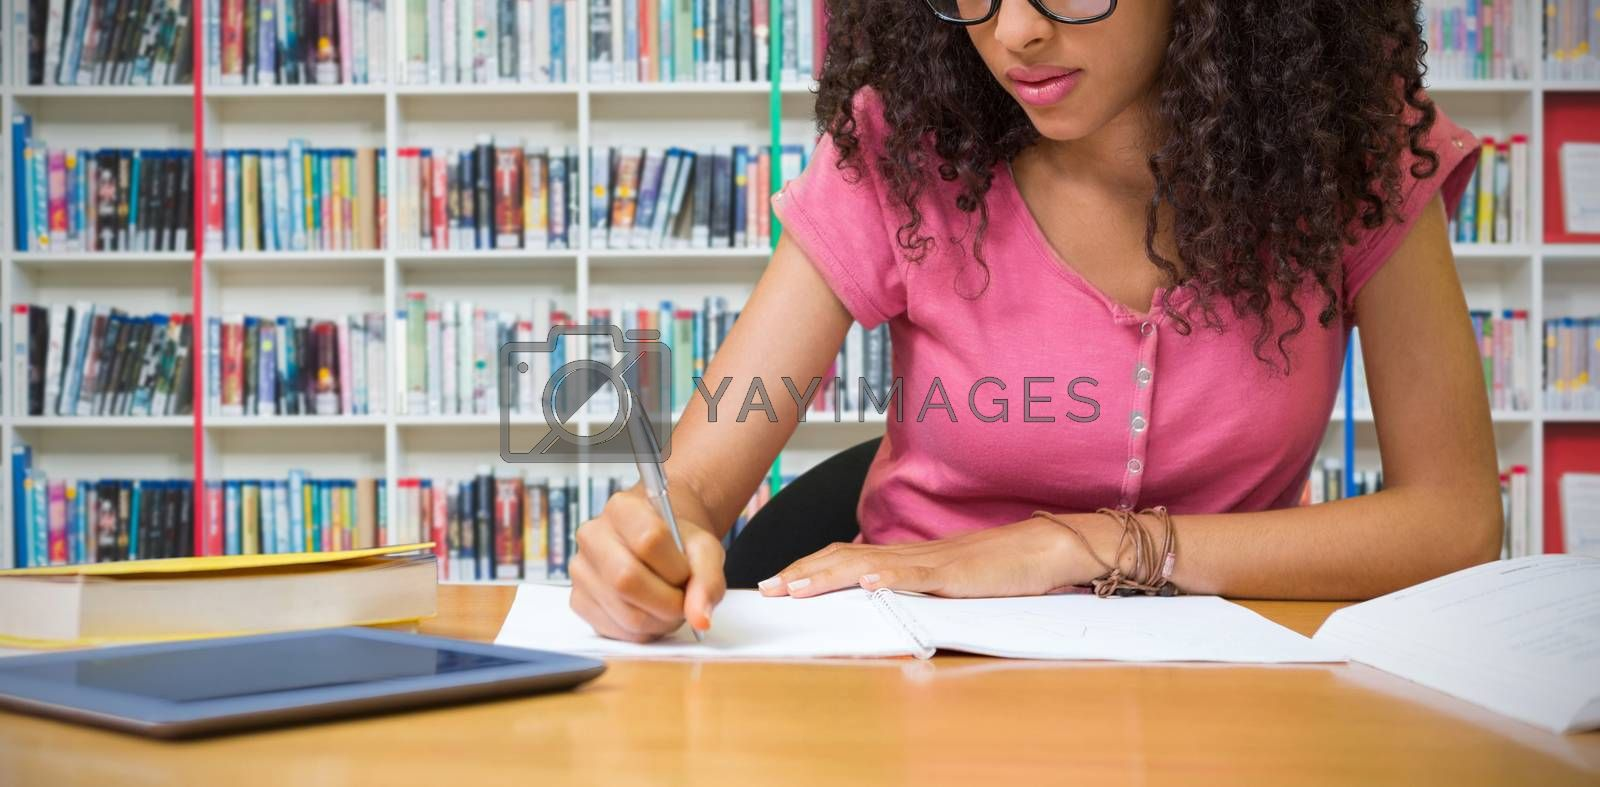 Composite image of student sitting in library writing by Wavebreakmedia